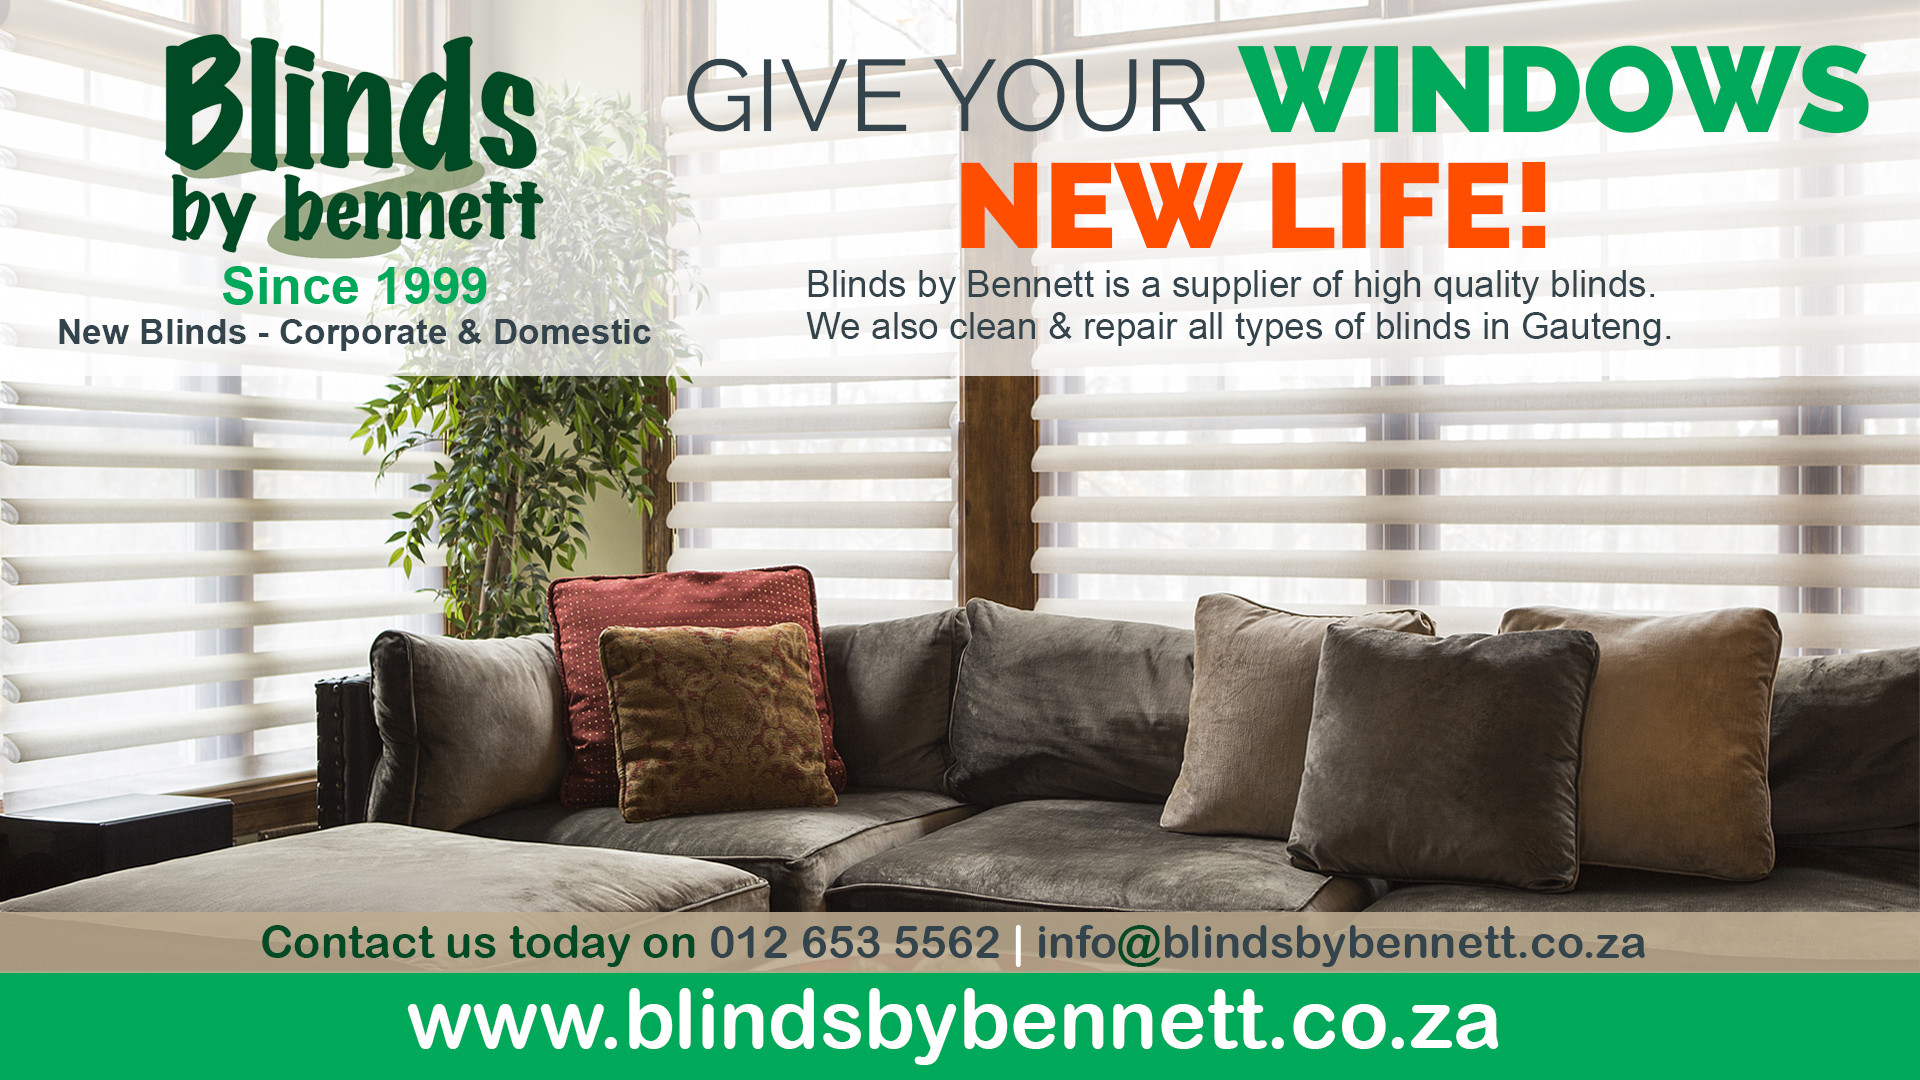 BLINDS BY BENNETT